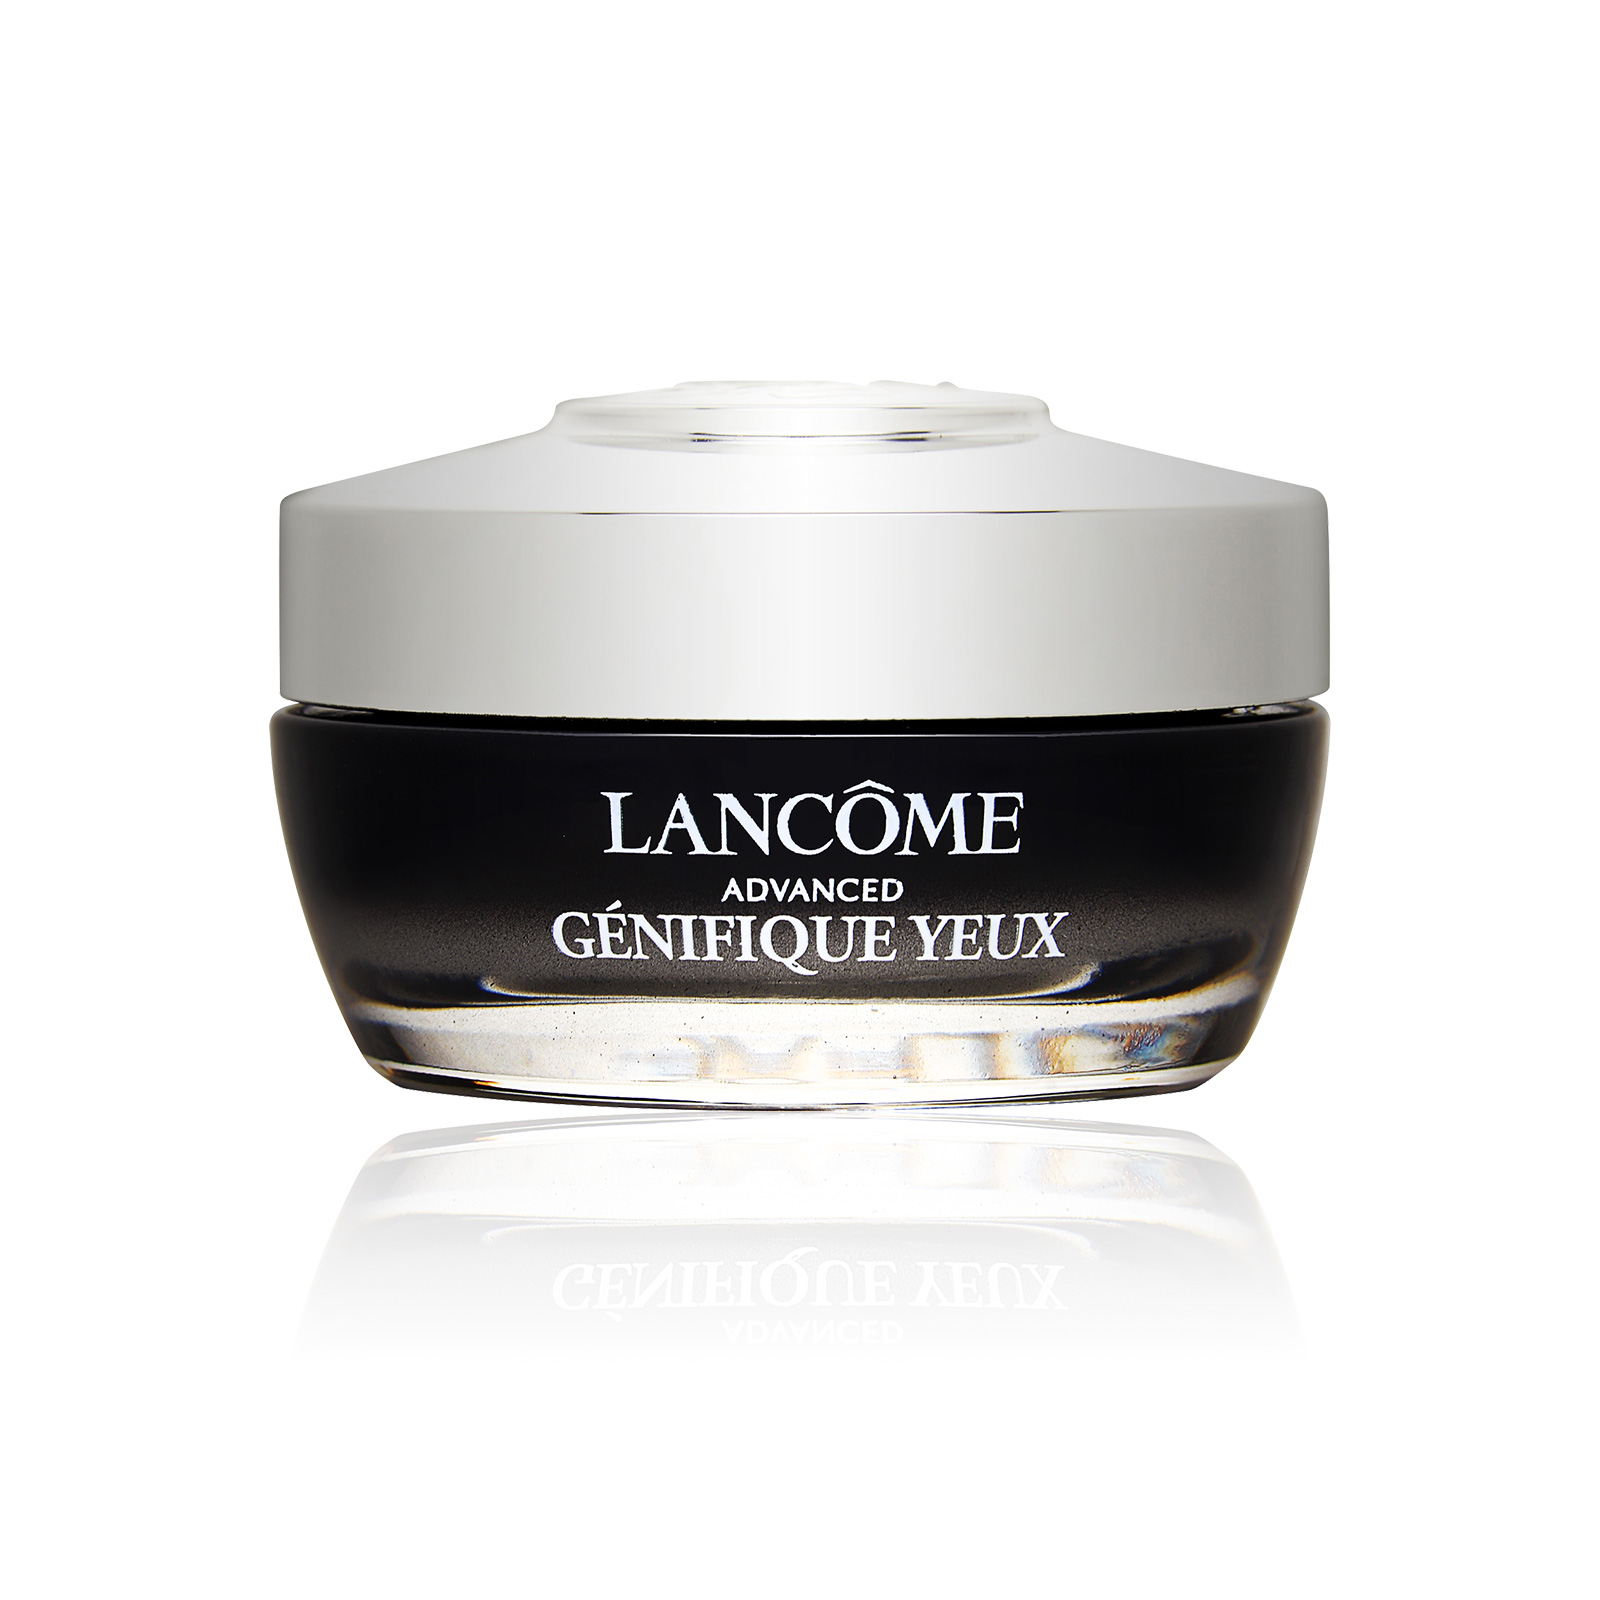 Advanced Genifique Yeux Youth Activating & Light Infusing Eye Cream